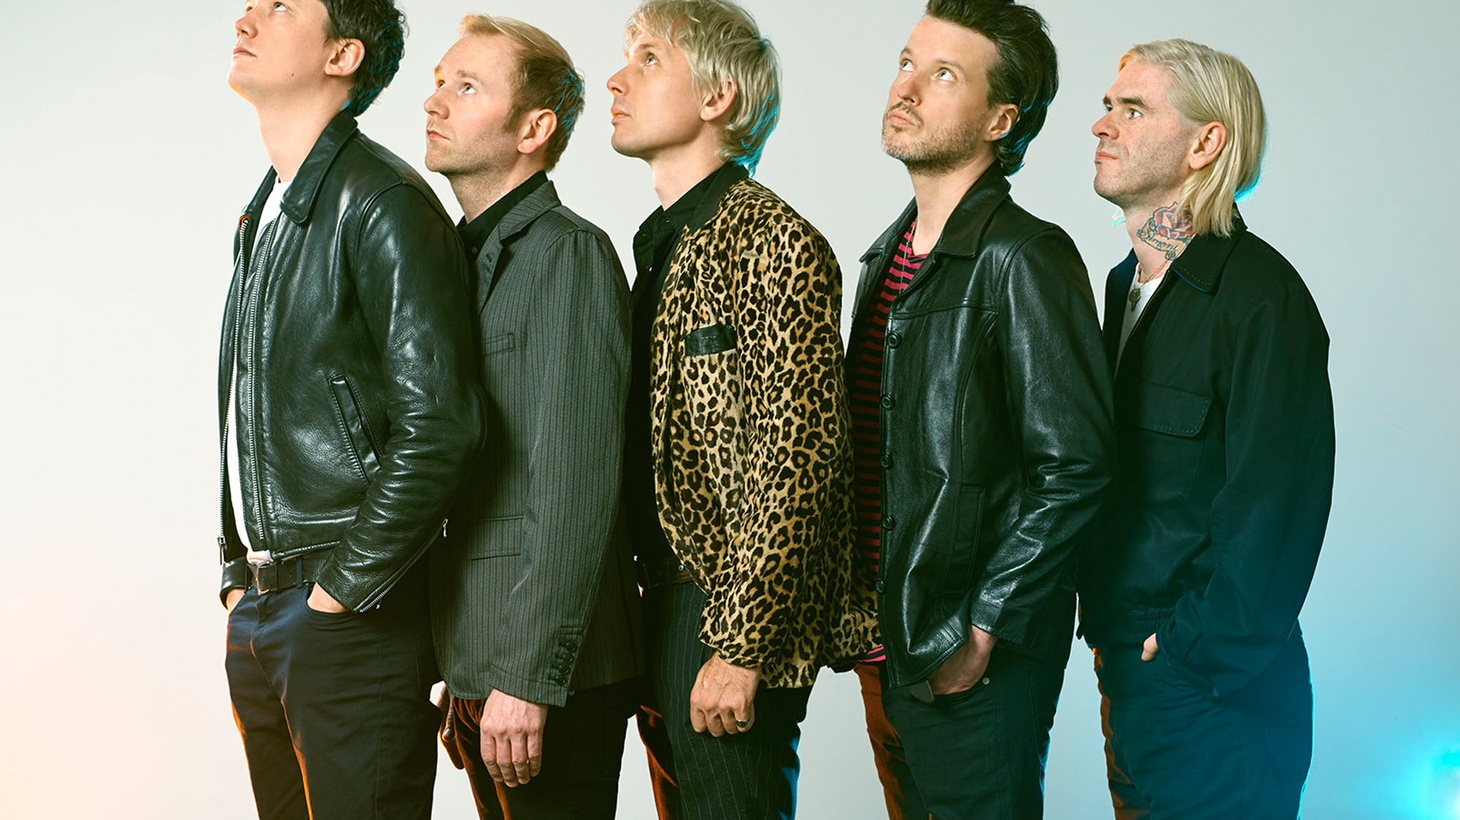 It's been ten years since Franz Ferdinand burst onto the scene with its dazzling groove. Since then, the band has sold 10 million records, won the coveted Mercury Prize and was honored with four Grammy nominations.